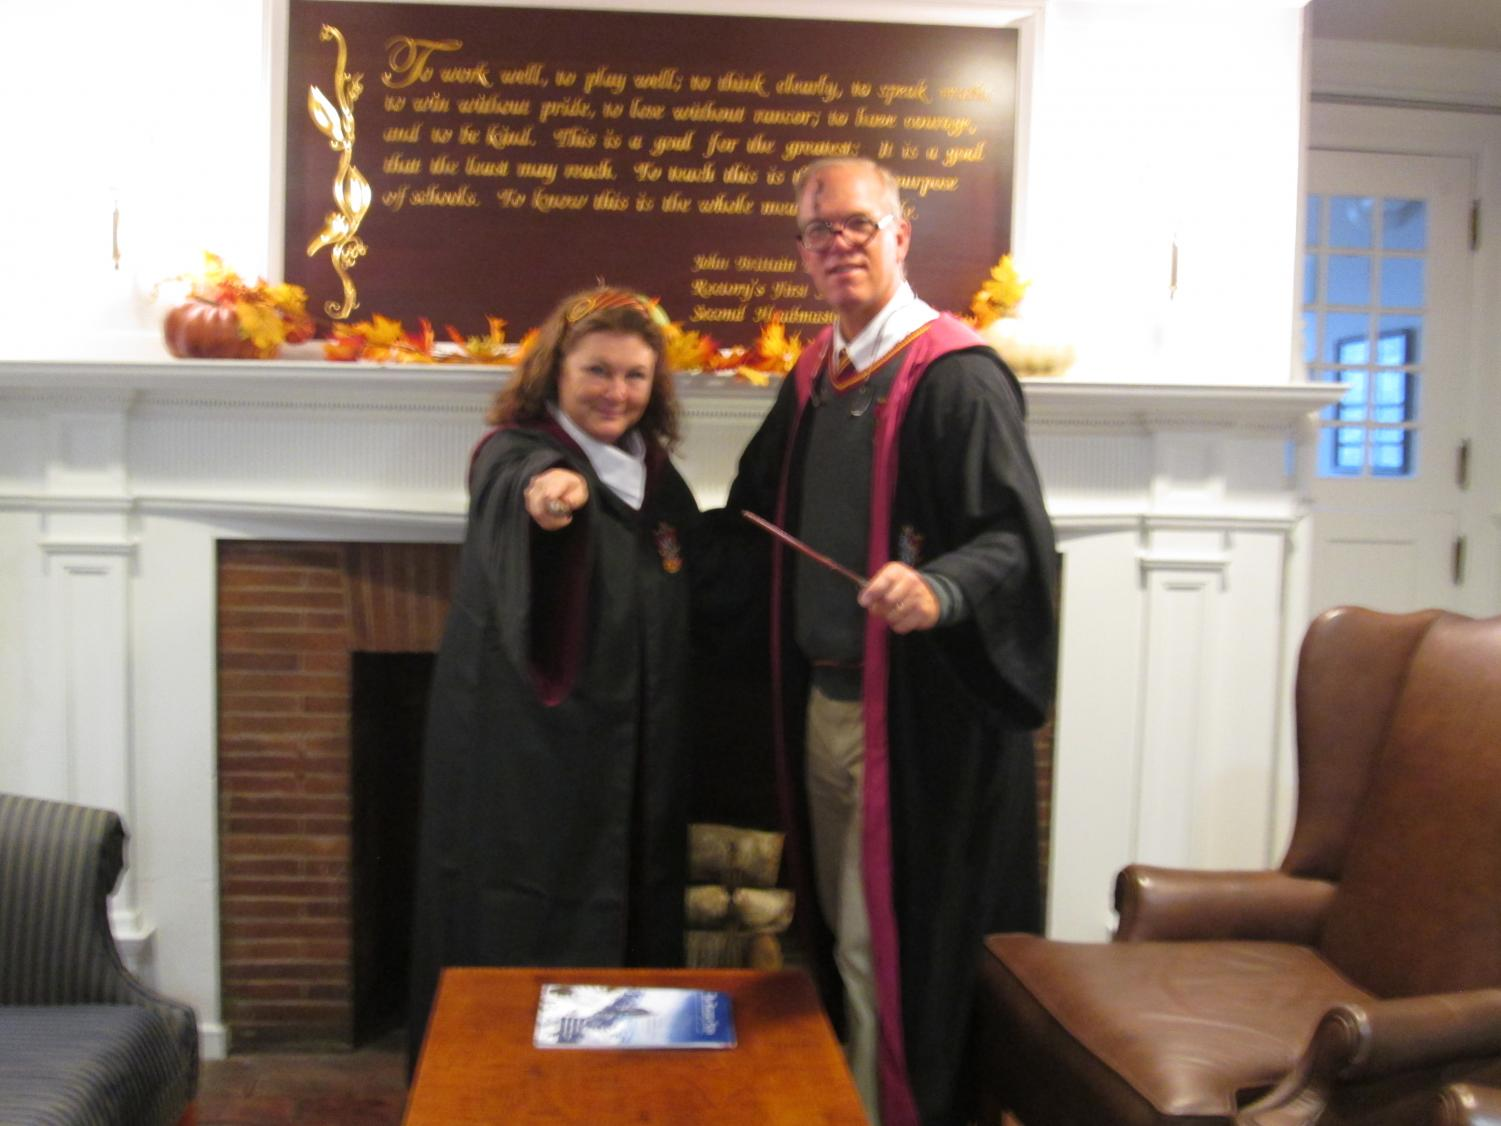 Even our Headmaster, Mr. Williams, and his wife, Marcia, dressed in creative costumes on Halloween Day!